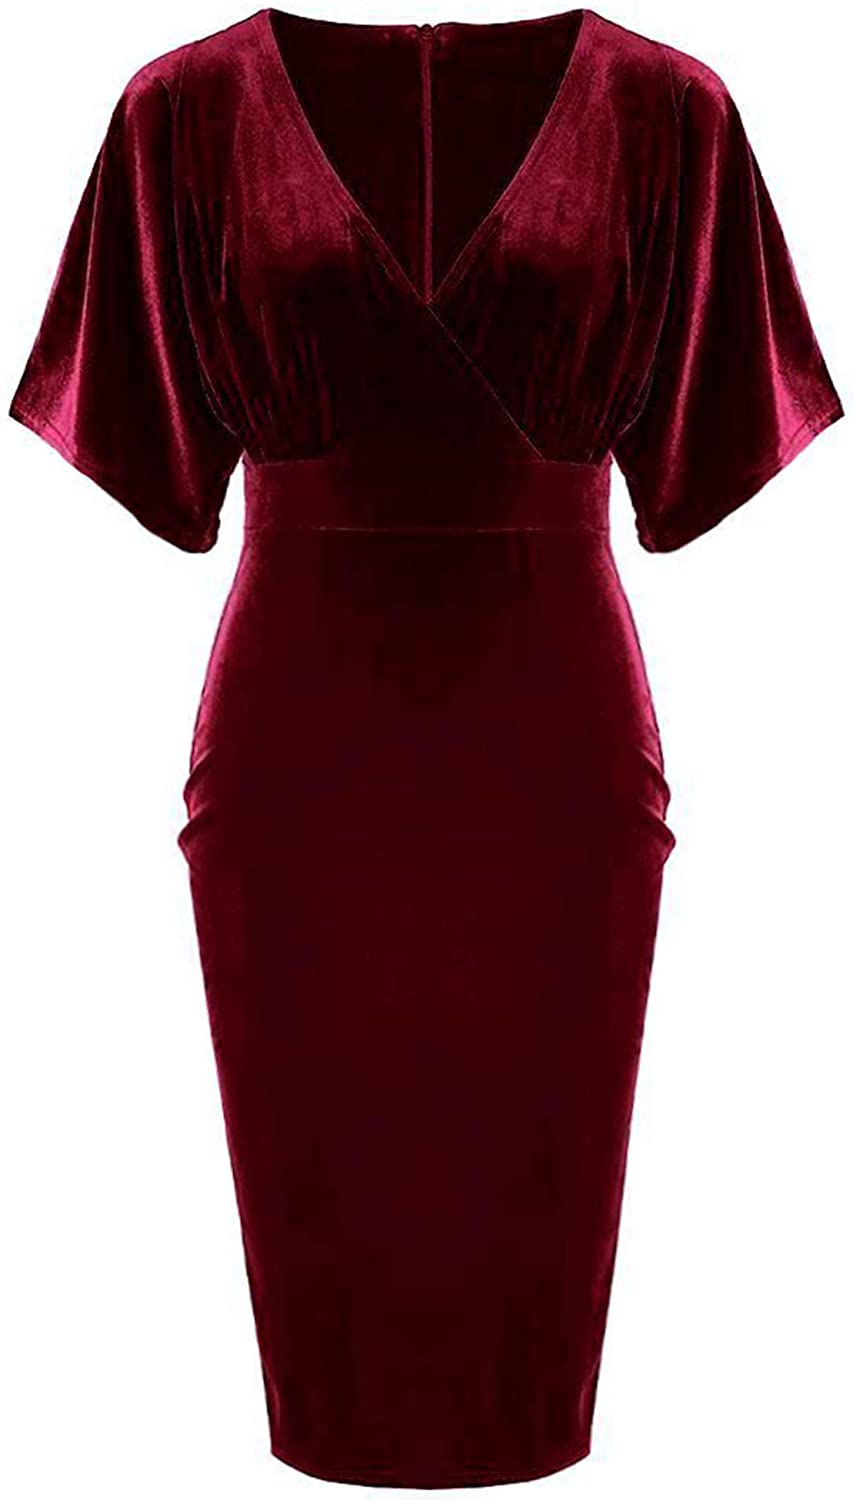 Special sale item GownTown New mail order 1950s Style Butterfly Dress Velvet Sleeve Pencil